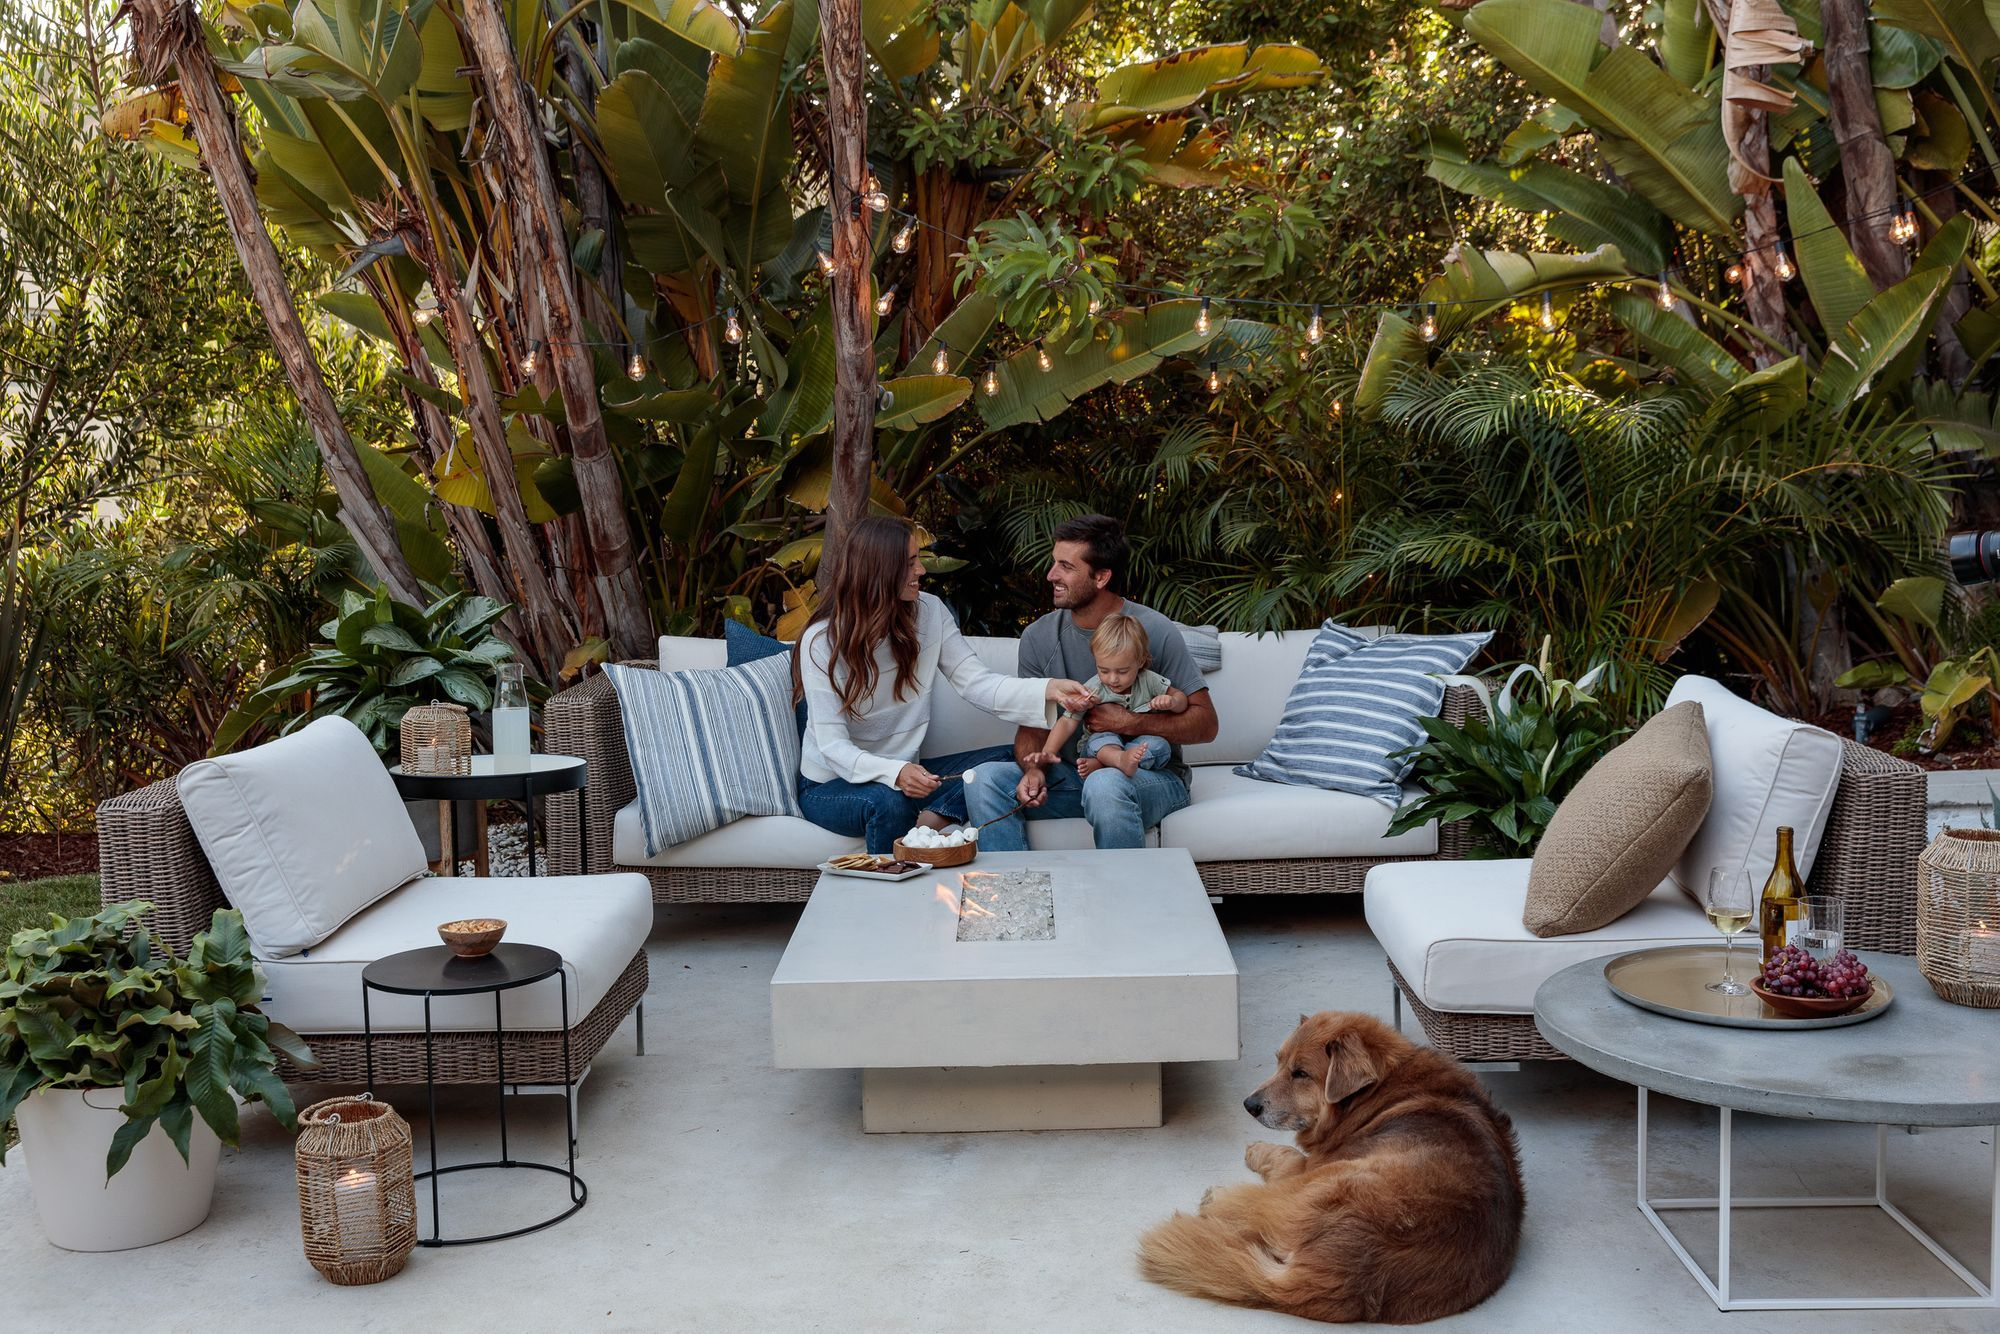 The Most Comfortable Outdoor Chair | Outer Spaces Blog For Ossu Iron Picnic Benches (View 19 of 25)